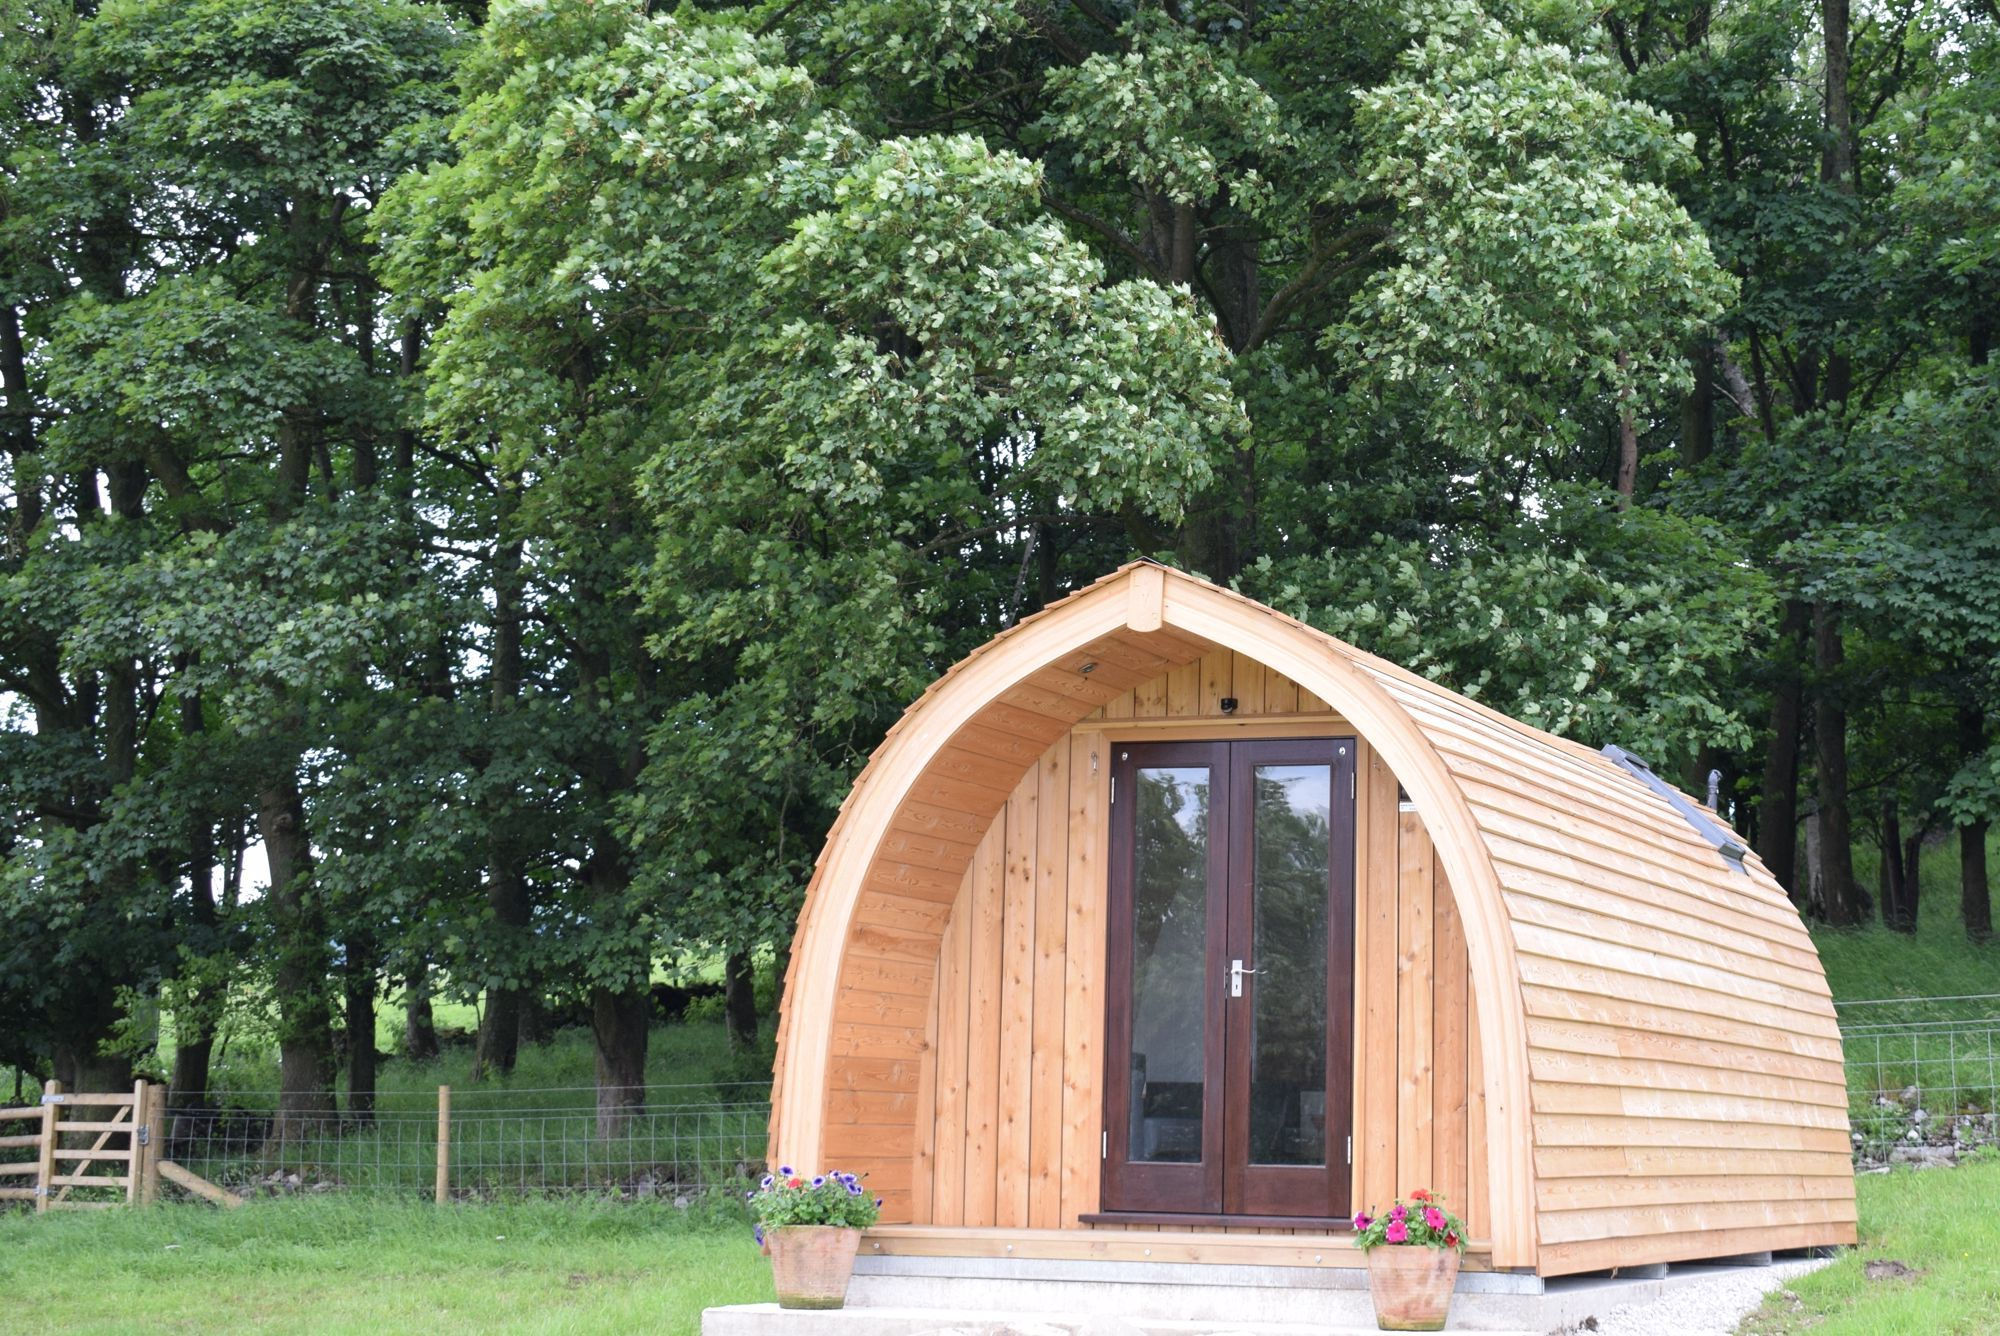 Family-sized, en suite glamping pods in the Peak District ...